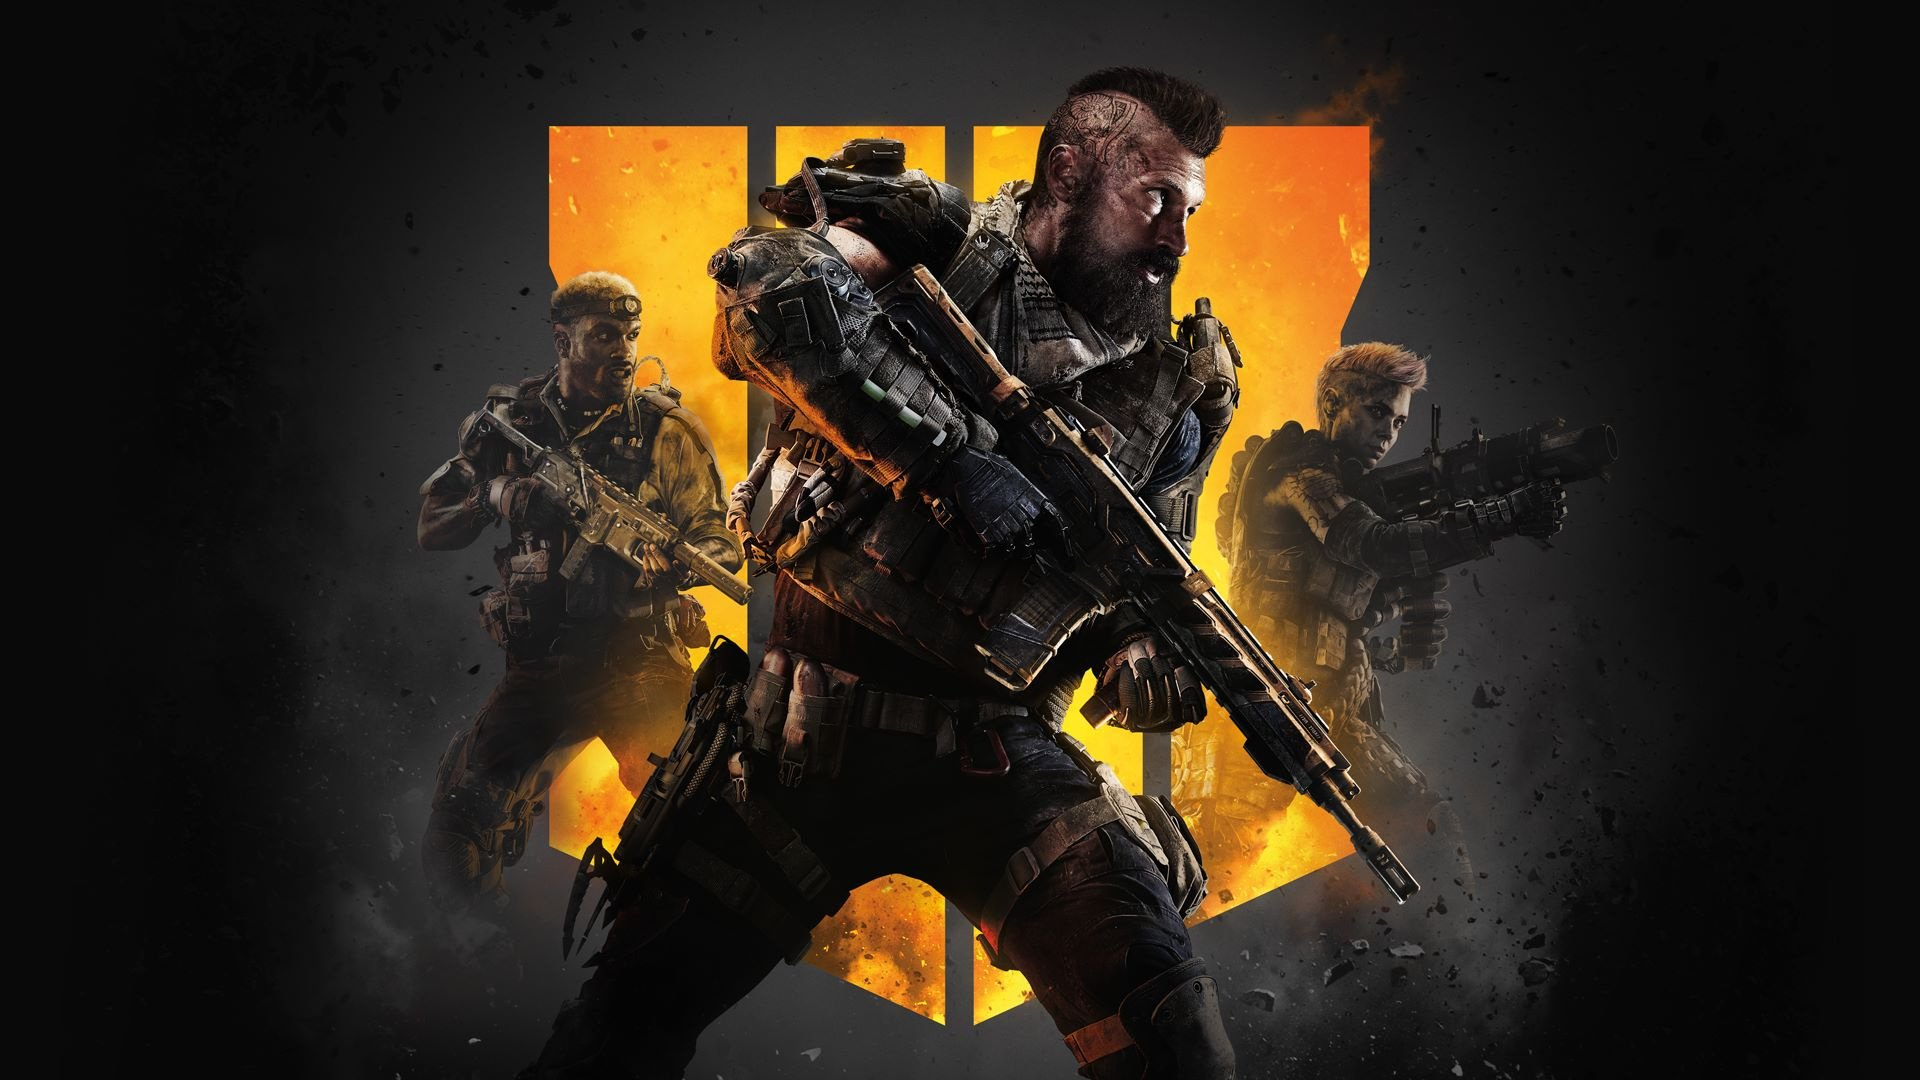 Call Of Duty Black Ops 4 How To Unlock All Blackout Characters Guide Push Square